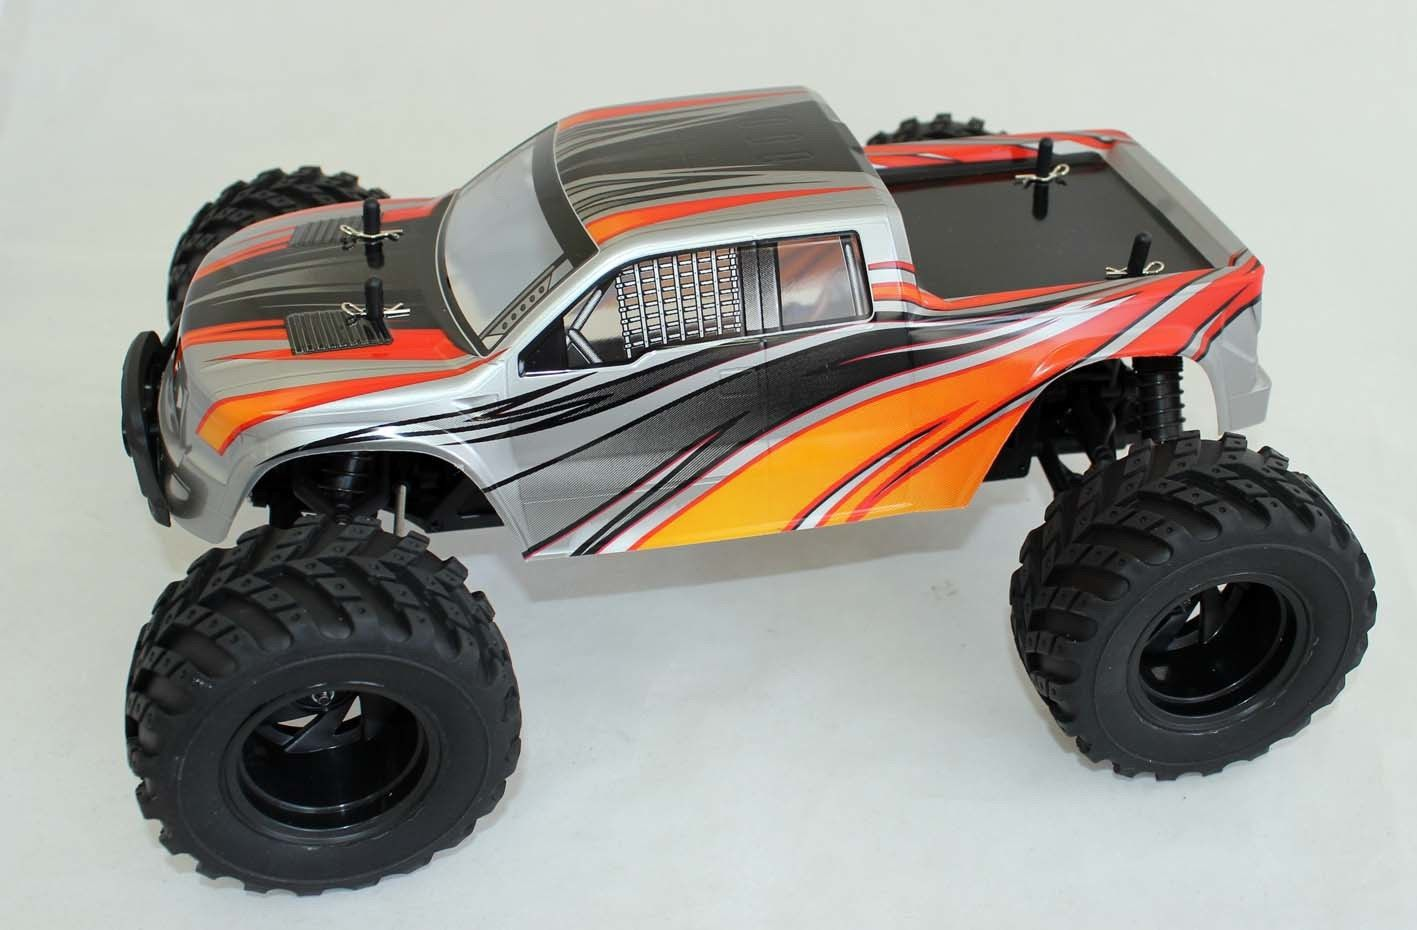 ground-crusher-monster-truck